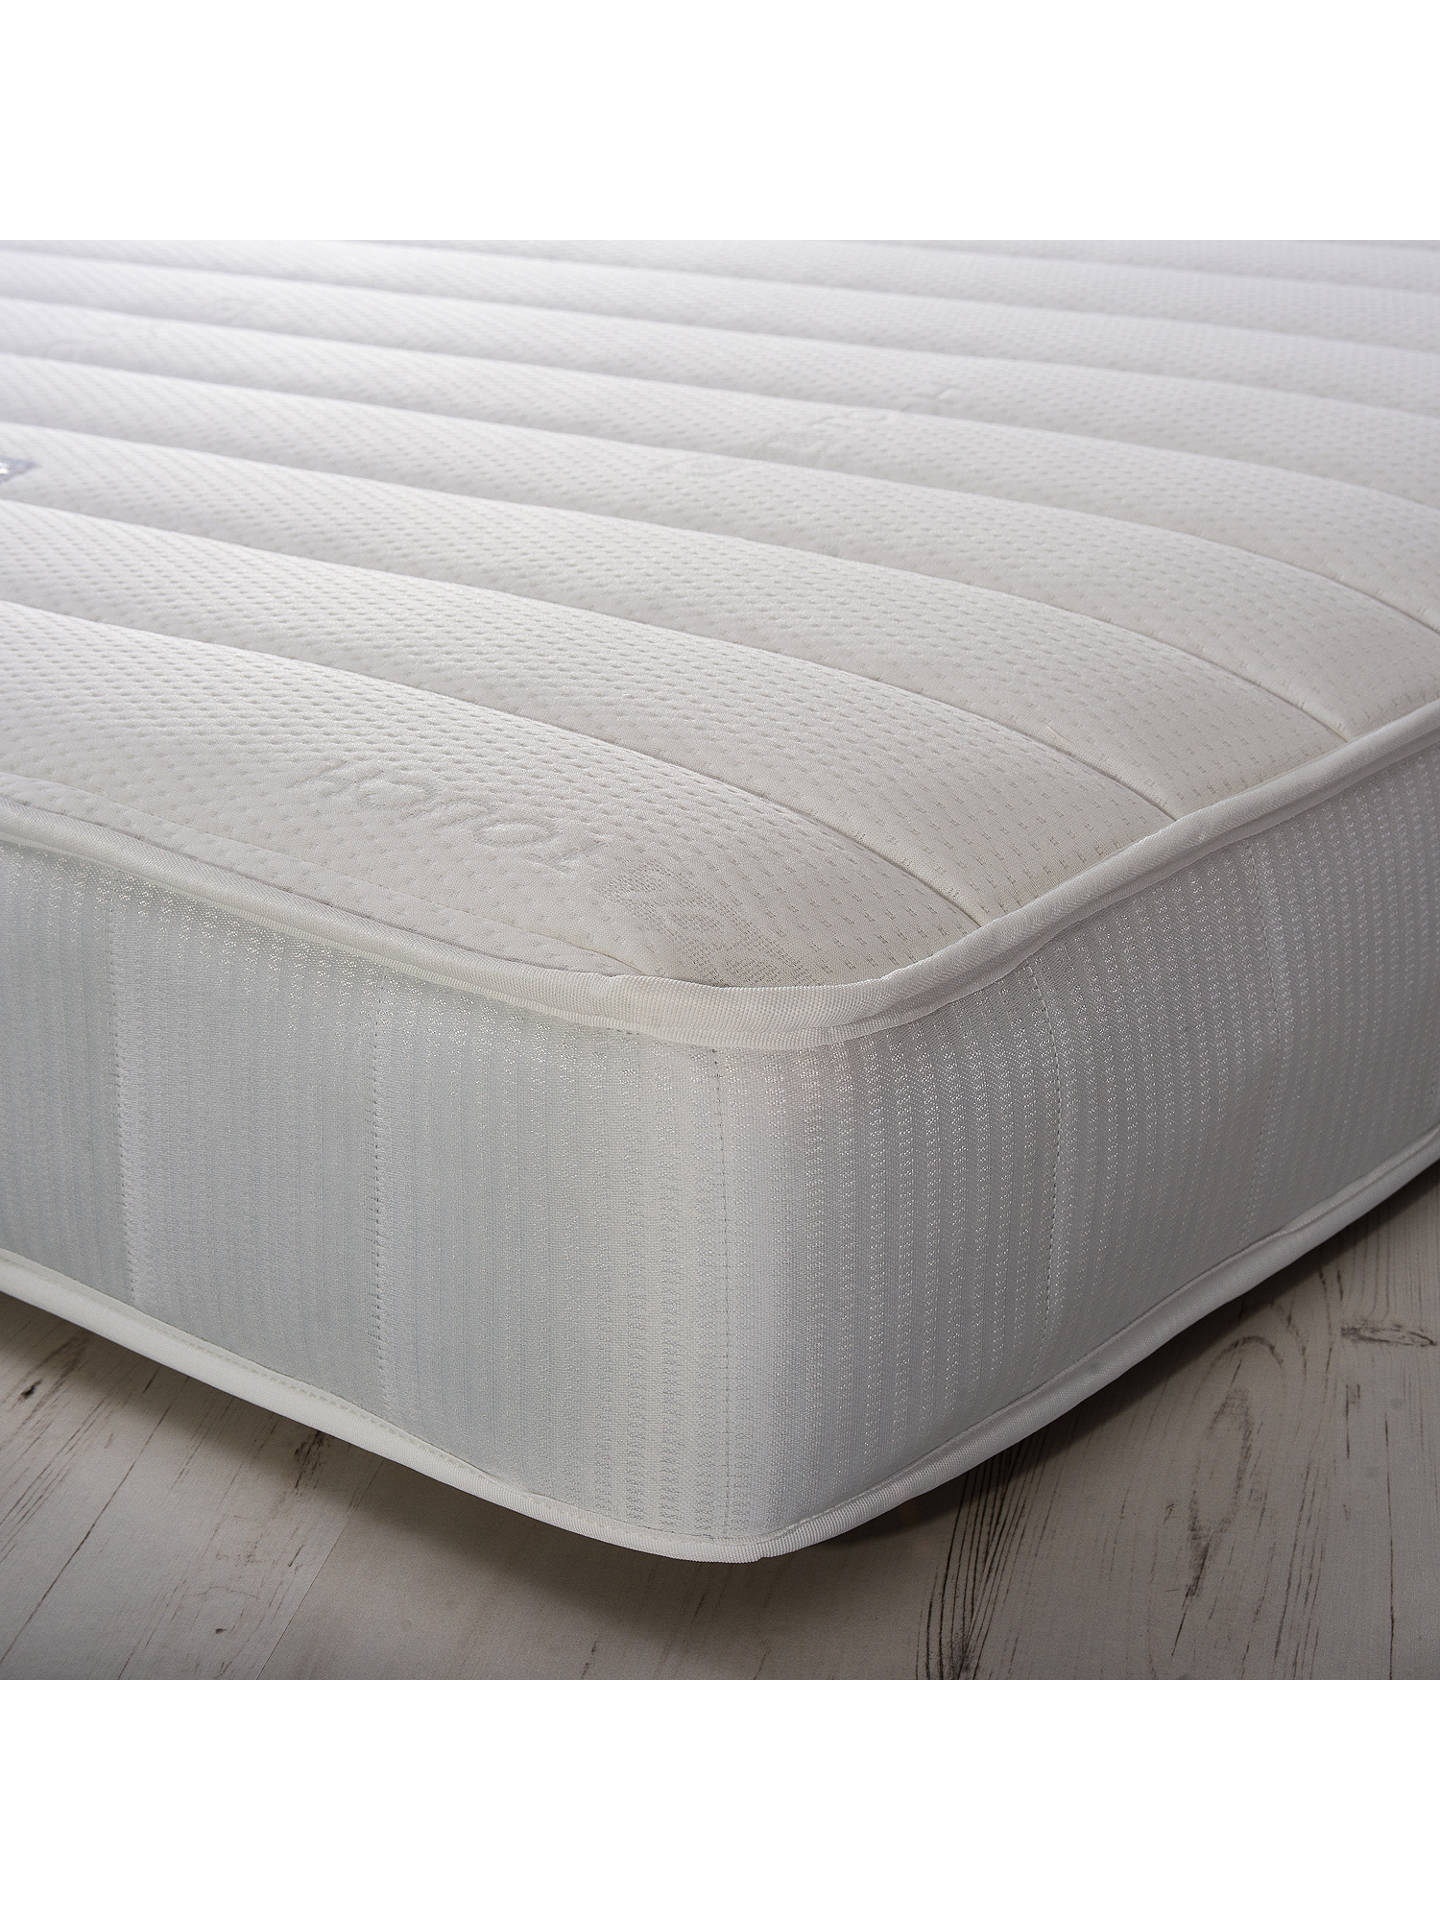 BuyJohn Lewis & Partners Essentials Collection Pocket Memory 1000, Medium Tension Pocket Spring Mattress, Single Online at johnlewis.com